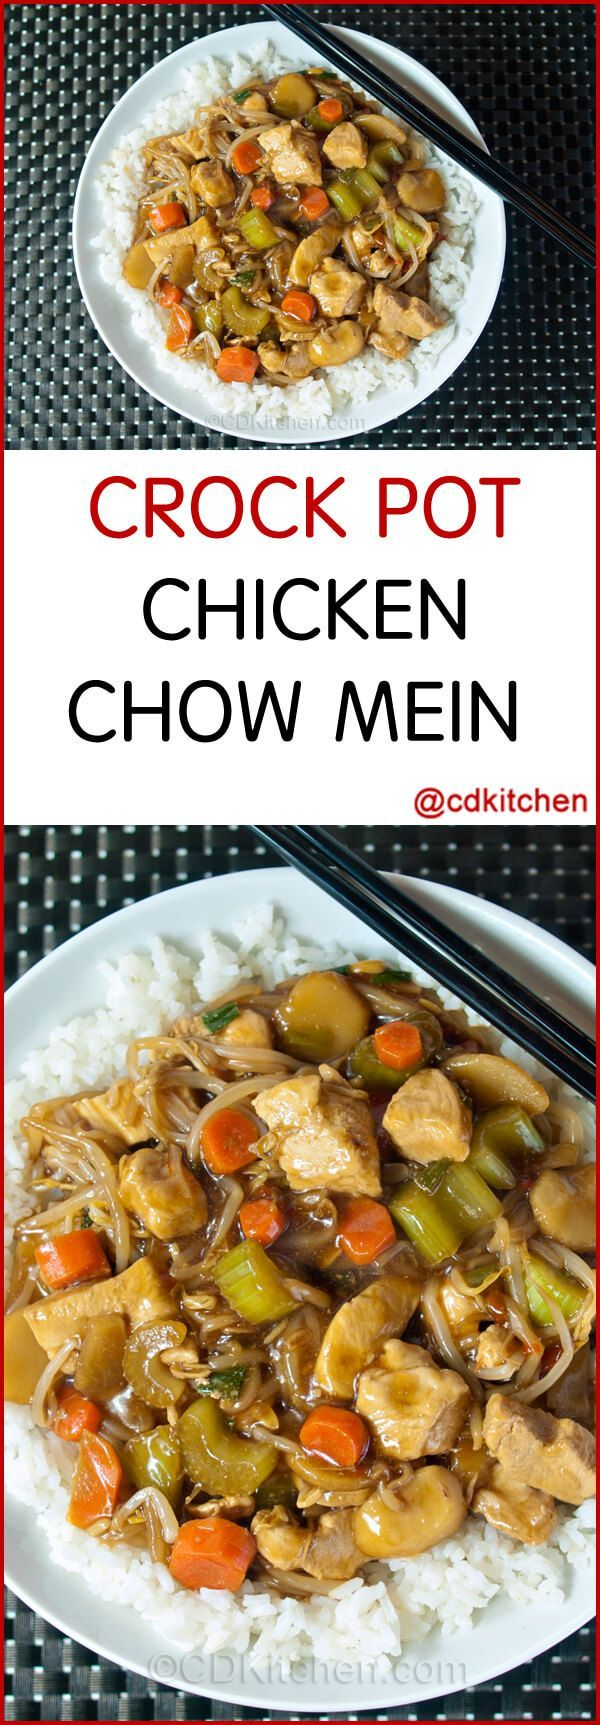 Slow Cooker Chicken Chow Mein With Water Chestnuts And Bean Sprouts - A tasty slow cooked chow mein made with chicken, carrots, green onion, celery, water chestnuts, and bean sprouts.| CDKitchen.com